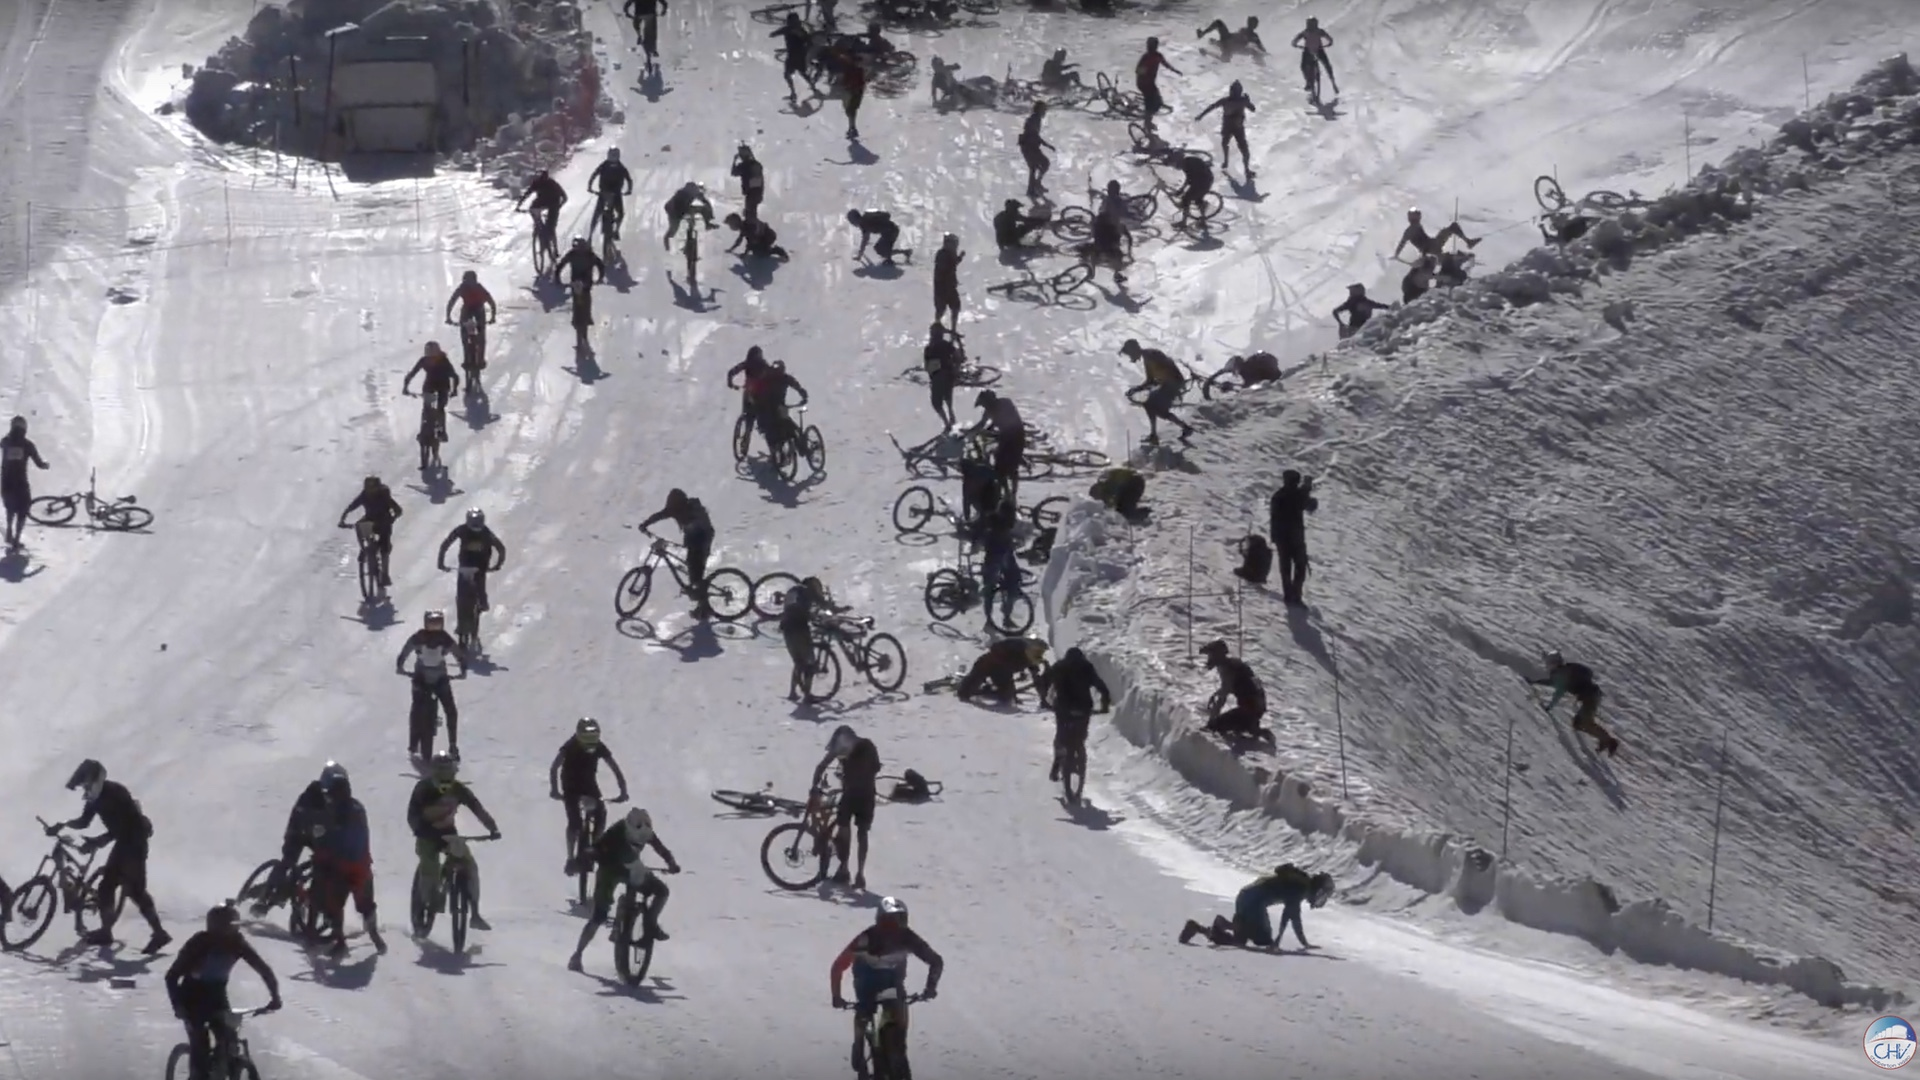 the-mountain-of-hell-2019-glacier-bike-race-results-in-a-totally-epic-wipe-out-social.jpg